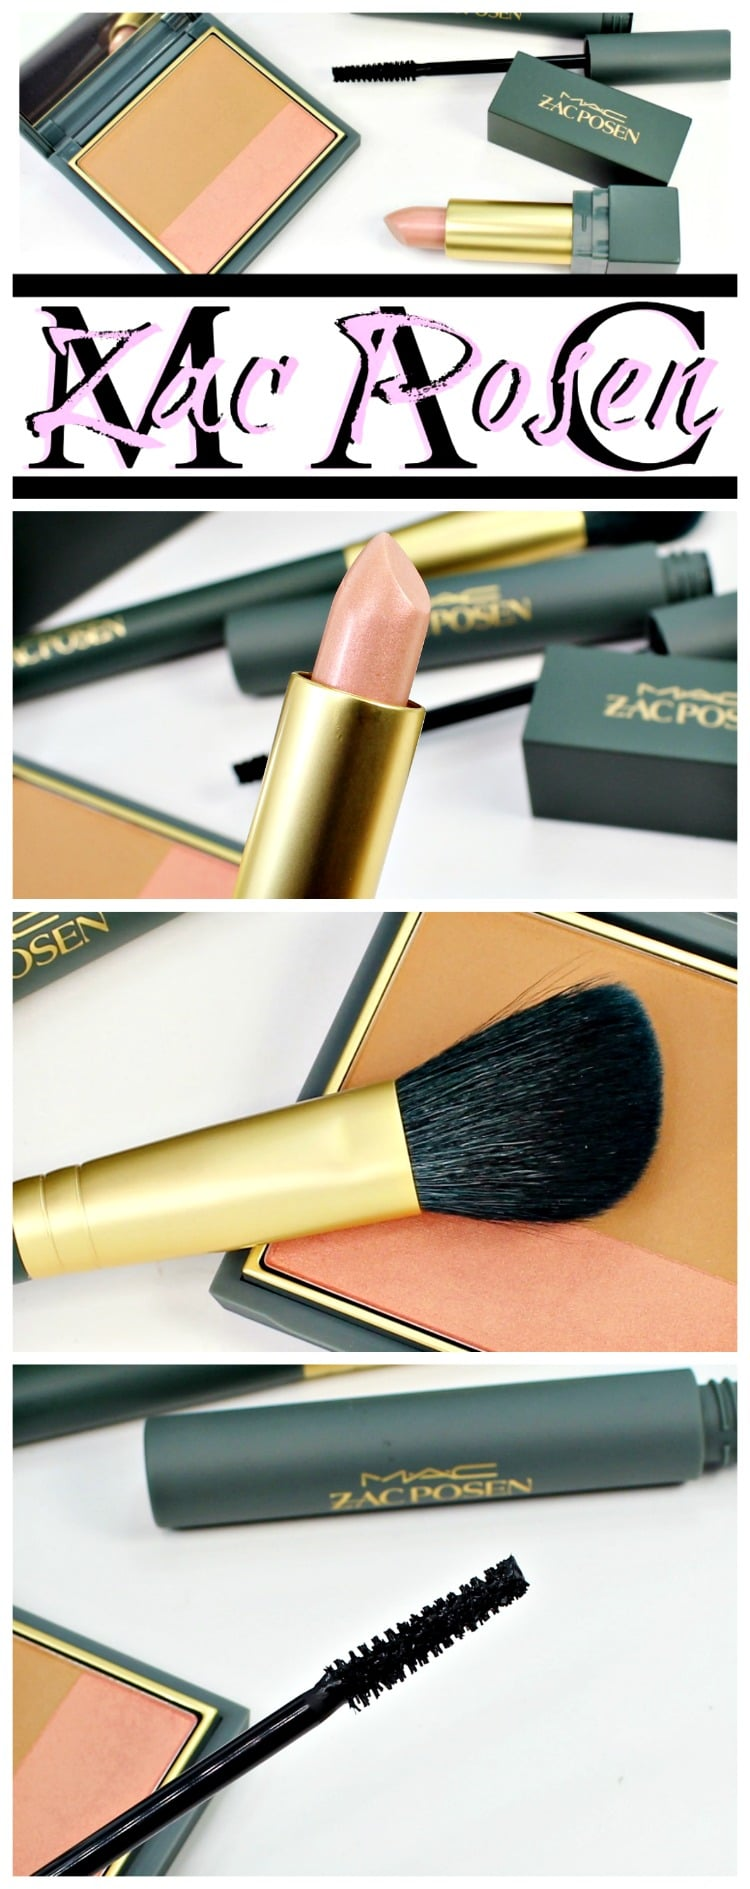 mac zac posen makeup collection swatches review pinterest